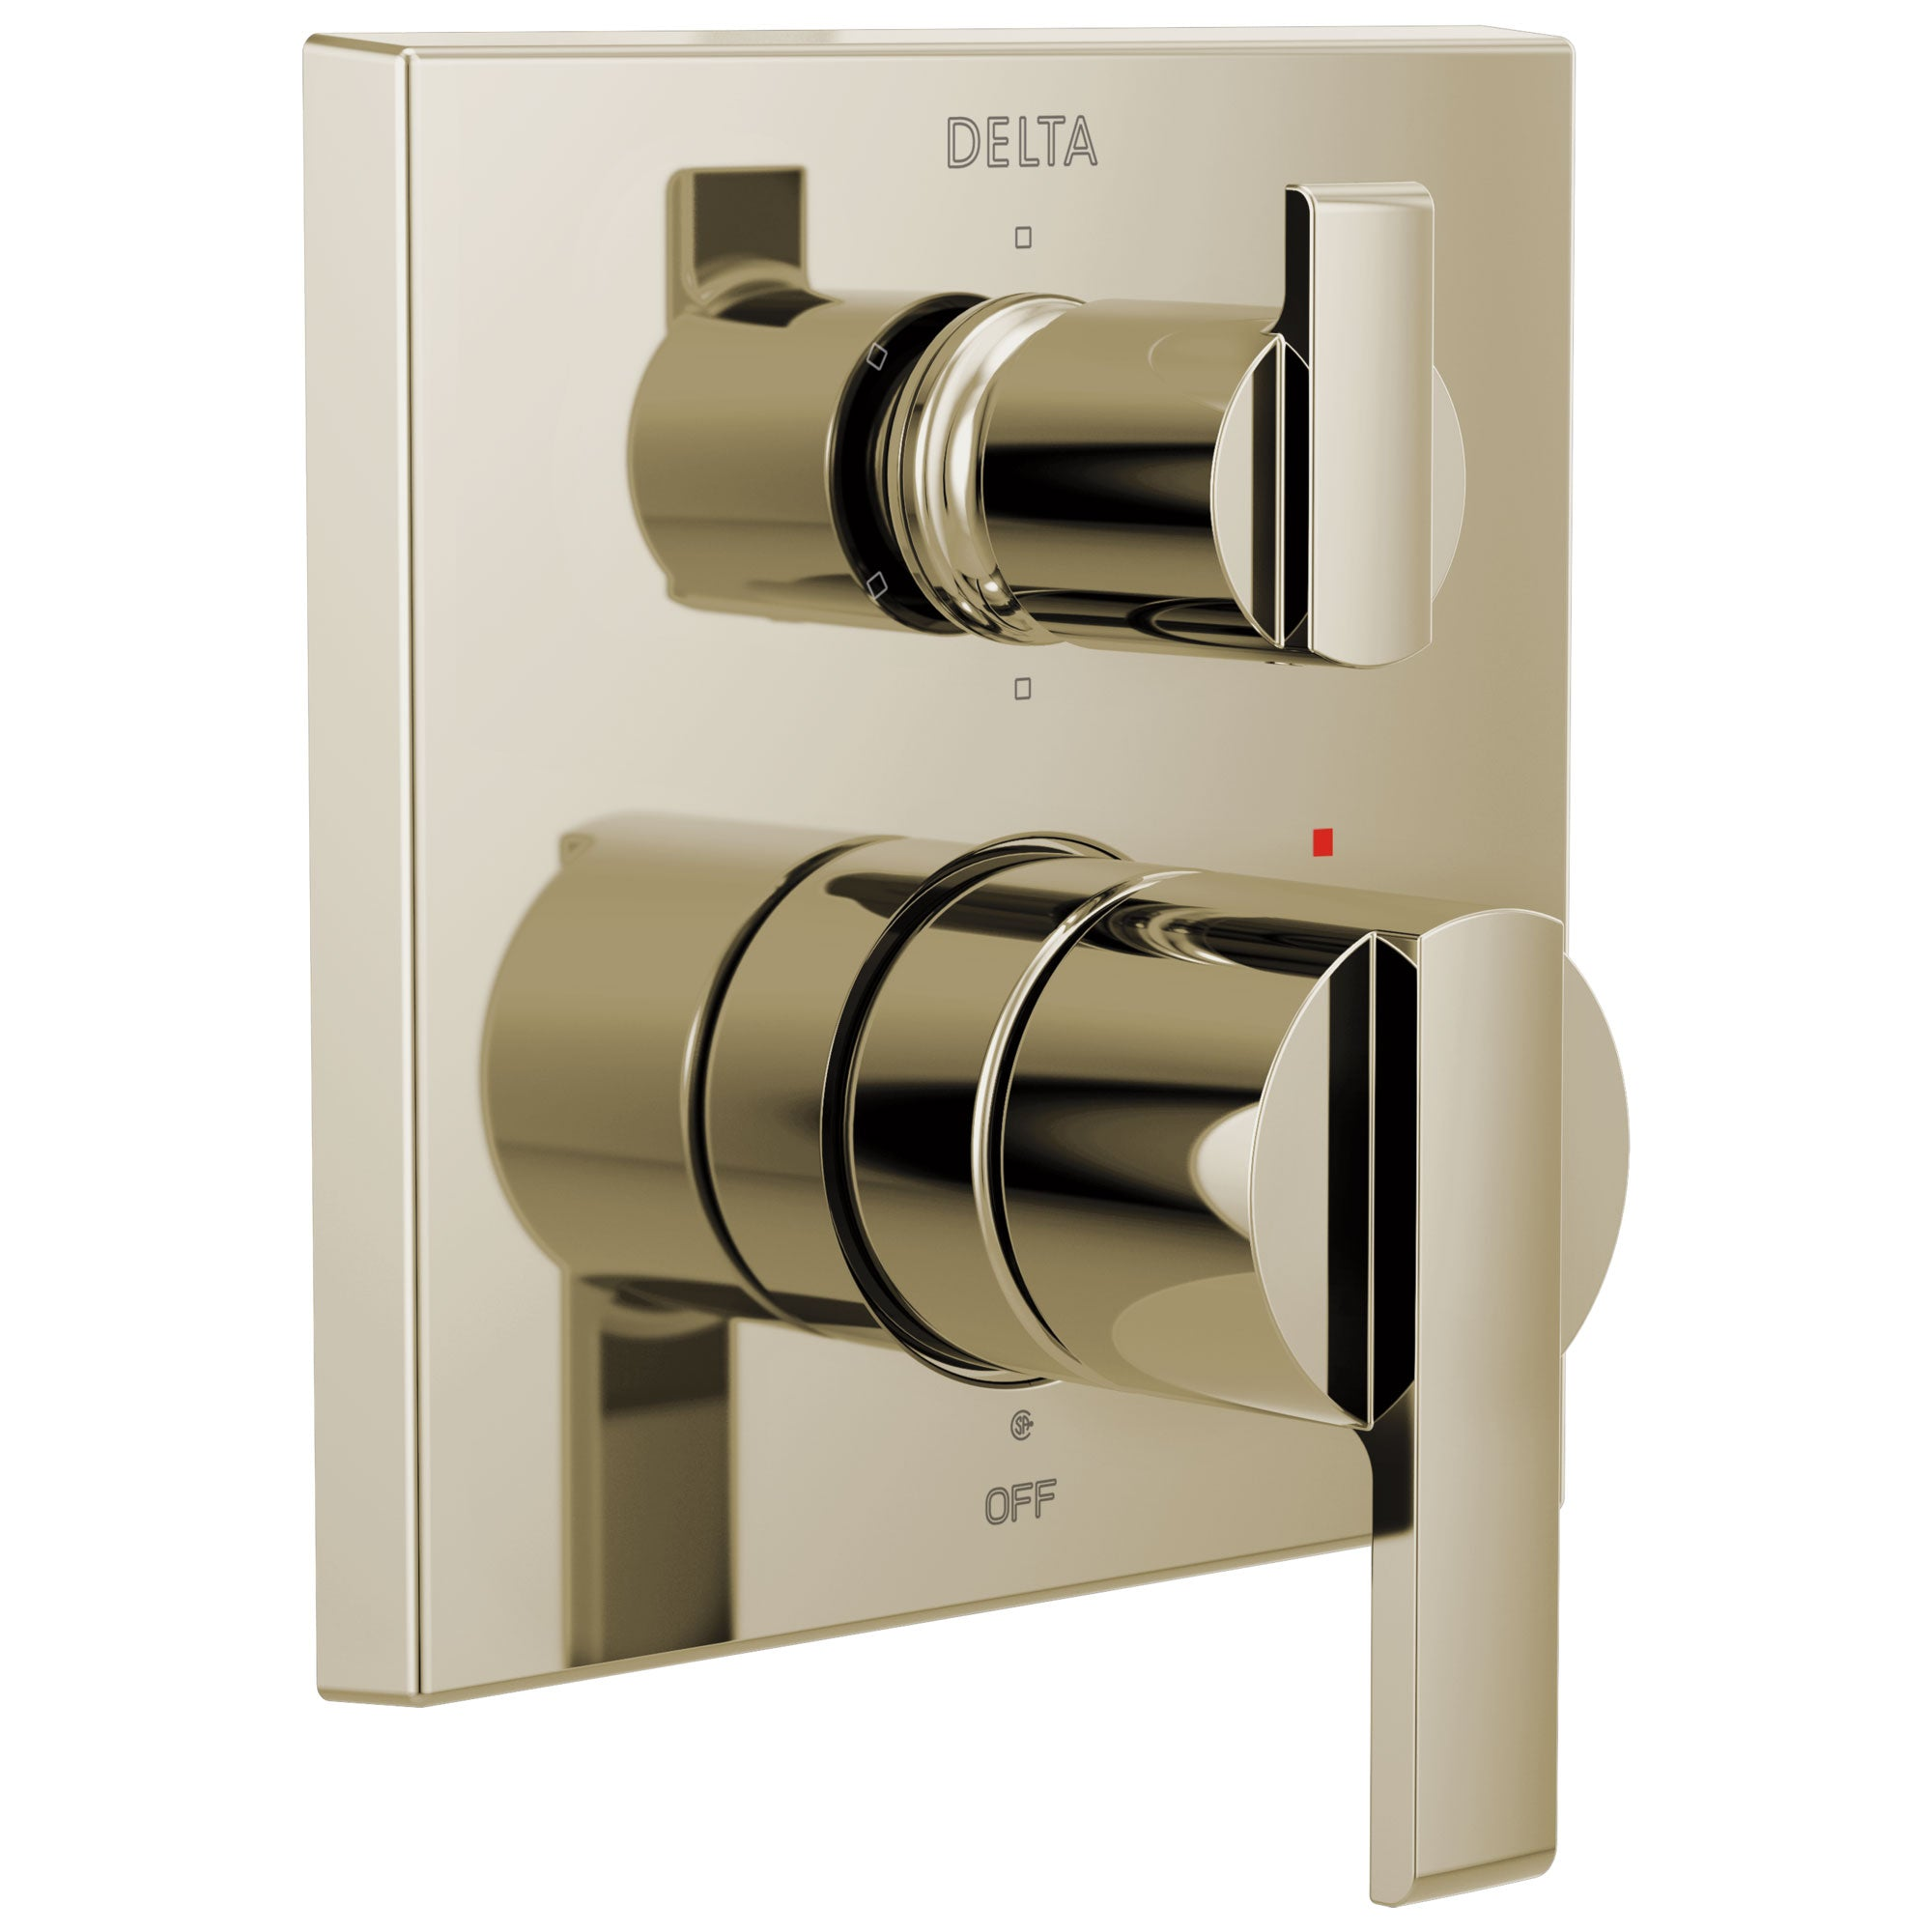 Delta Ara Polished Nickel Finish Angular Modern 14 Series Shower System Control with 6-Setting Integrated Diverter Includes Valve and Handles D3754V